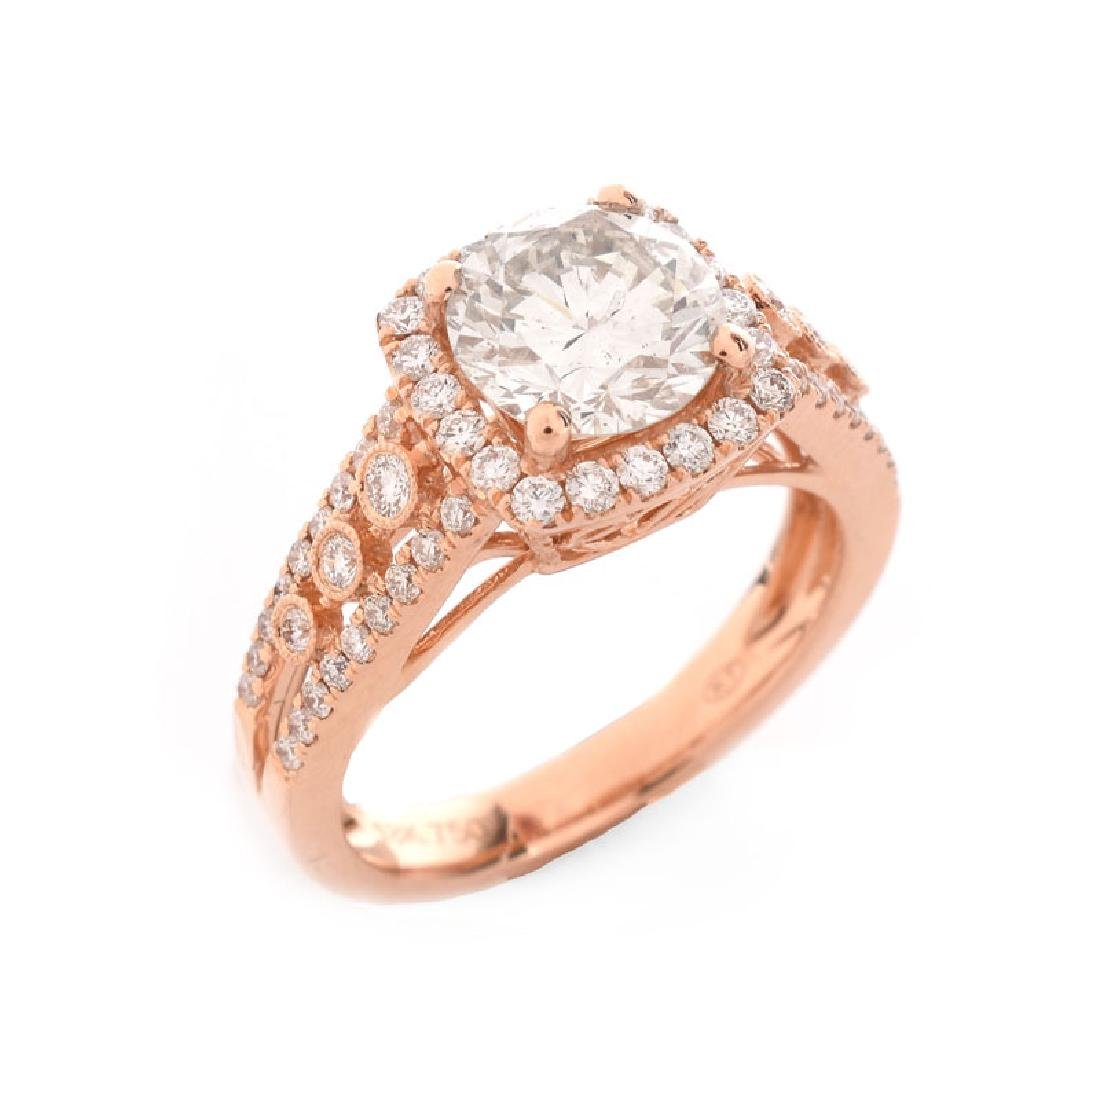 Approx. 2.64 Carat TW Diamond and 18 Karat Rose Gold